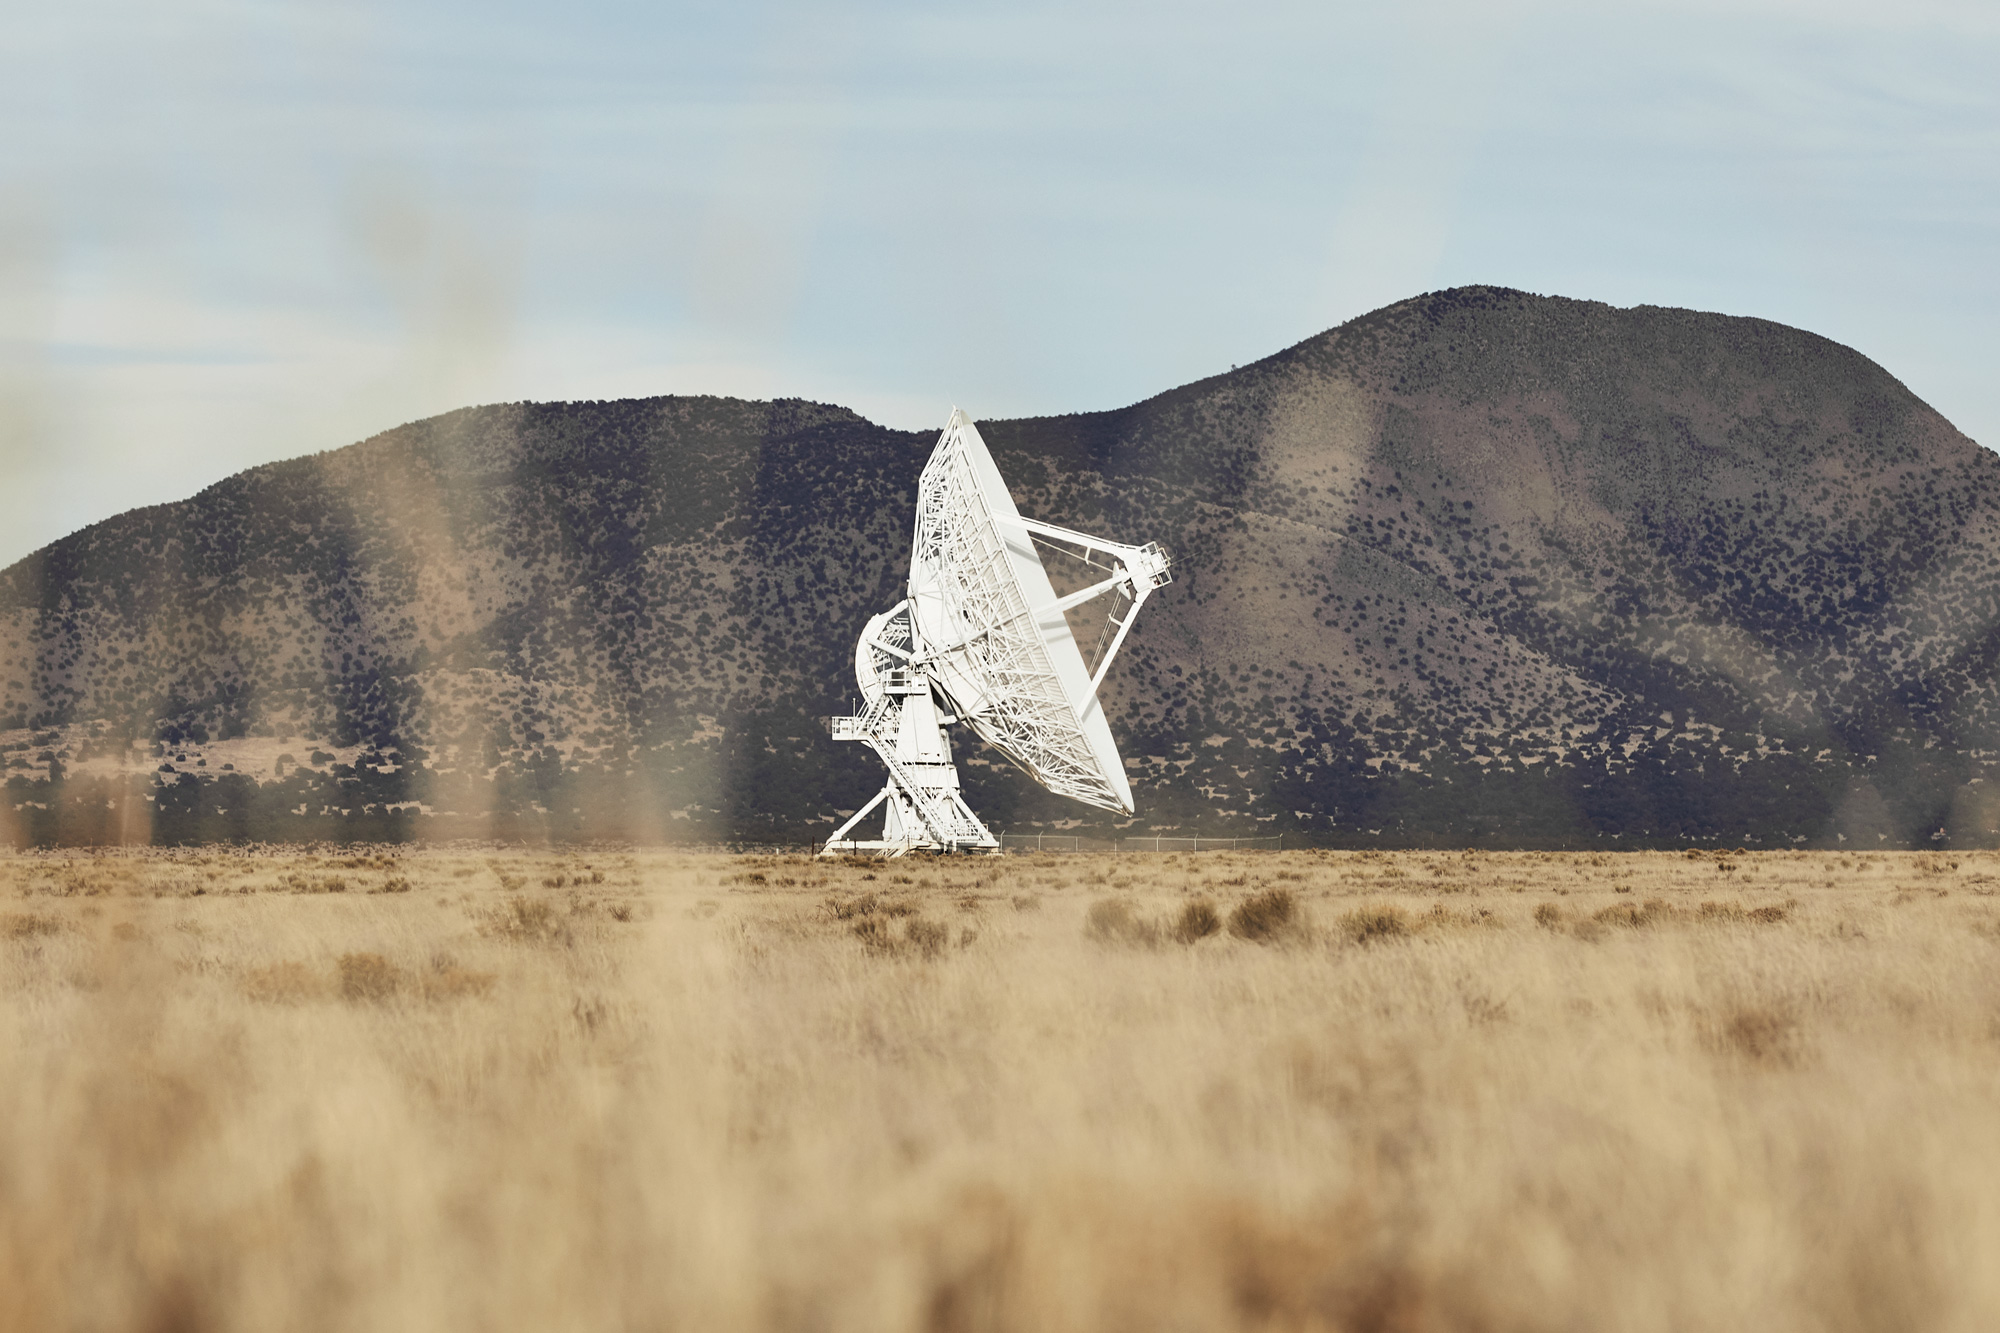 Very Large Array - New Mexico  - Stephen Denton Photography -Los Angeles, CA Commercial Photographer